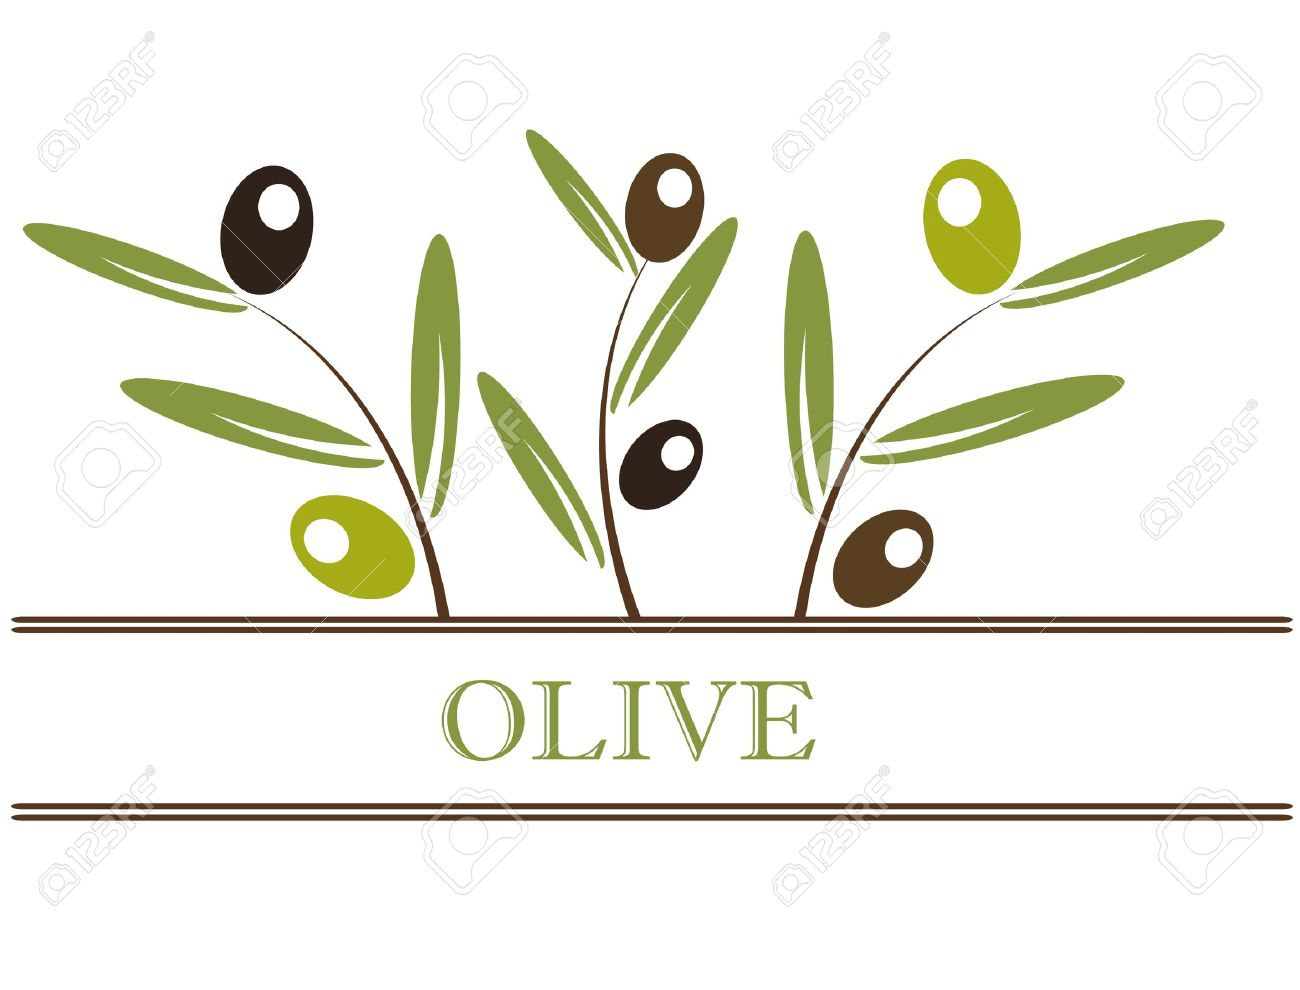 Olive branch label. Vector illustration Stock Vector - 12935255